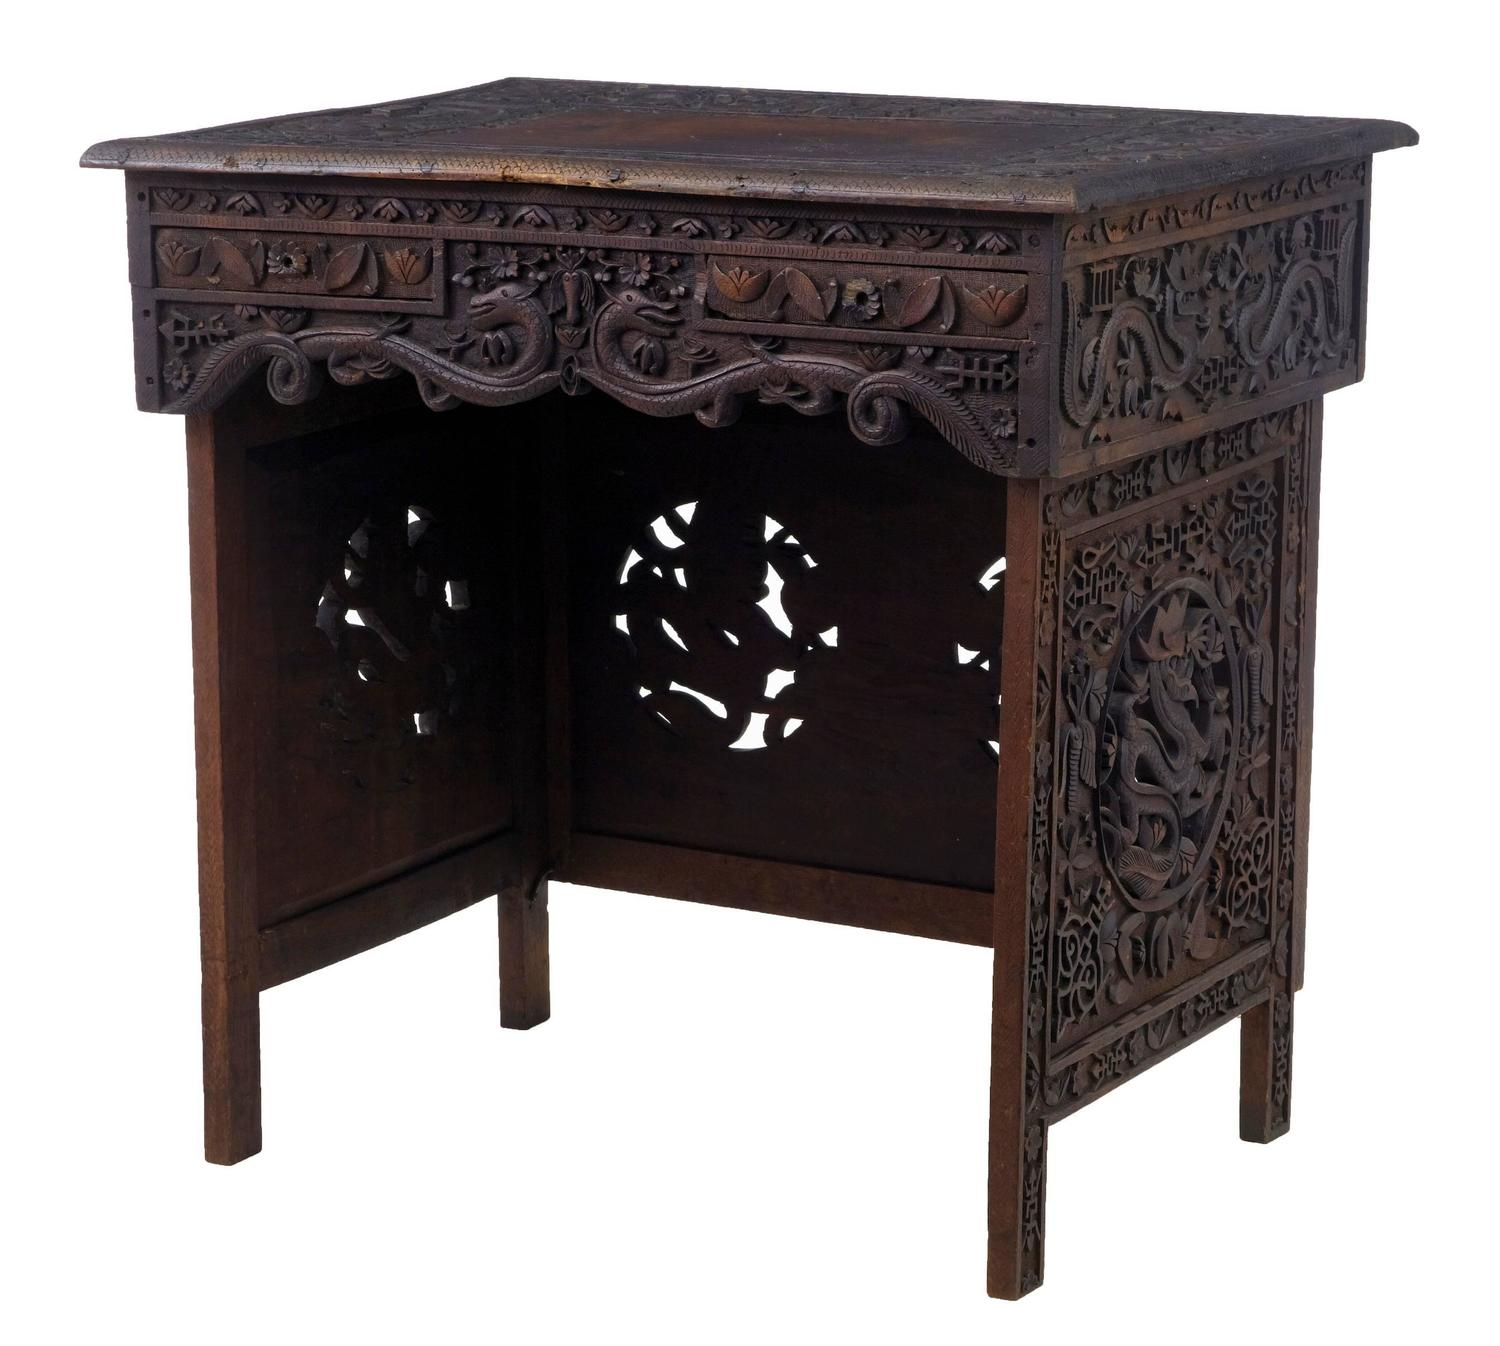 Chinese desks and writing tables 40 for sale at 1stdibs 19th century chinese hardwood folding traveling desk table geotapseo Gallery